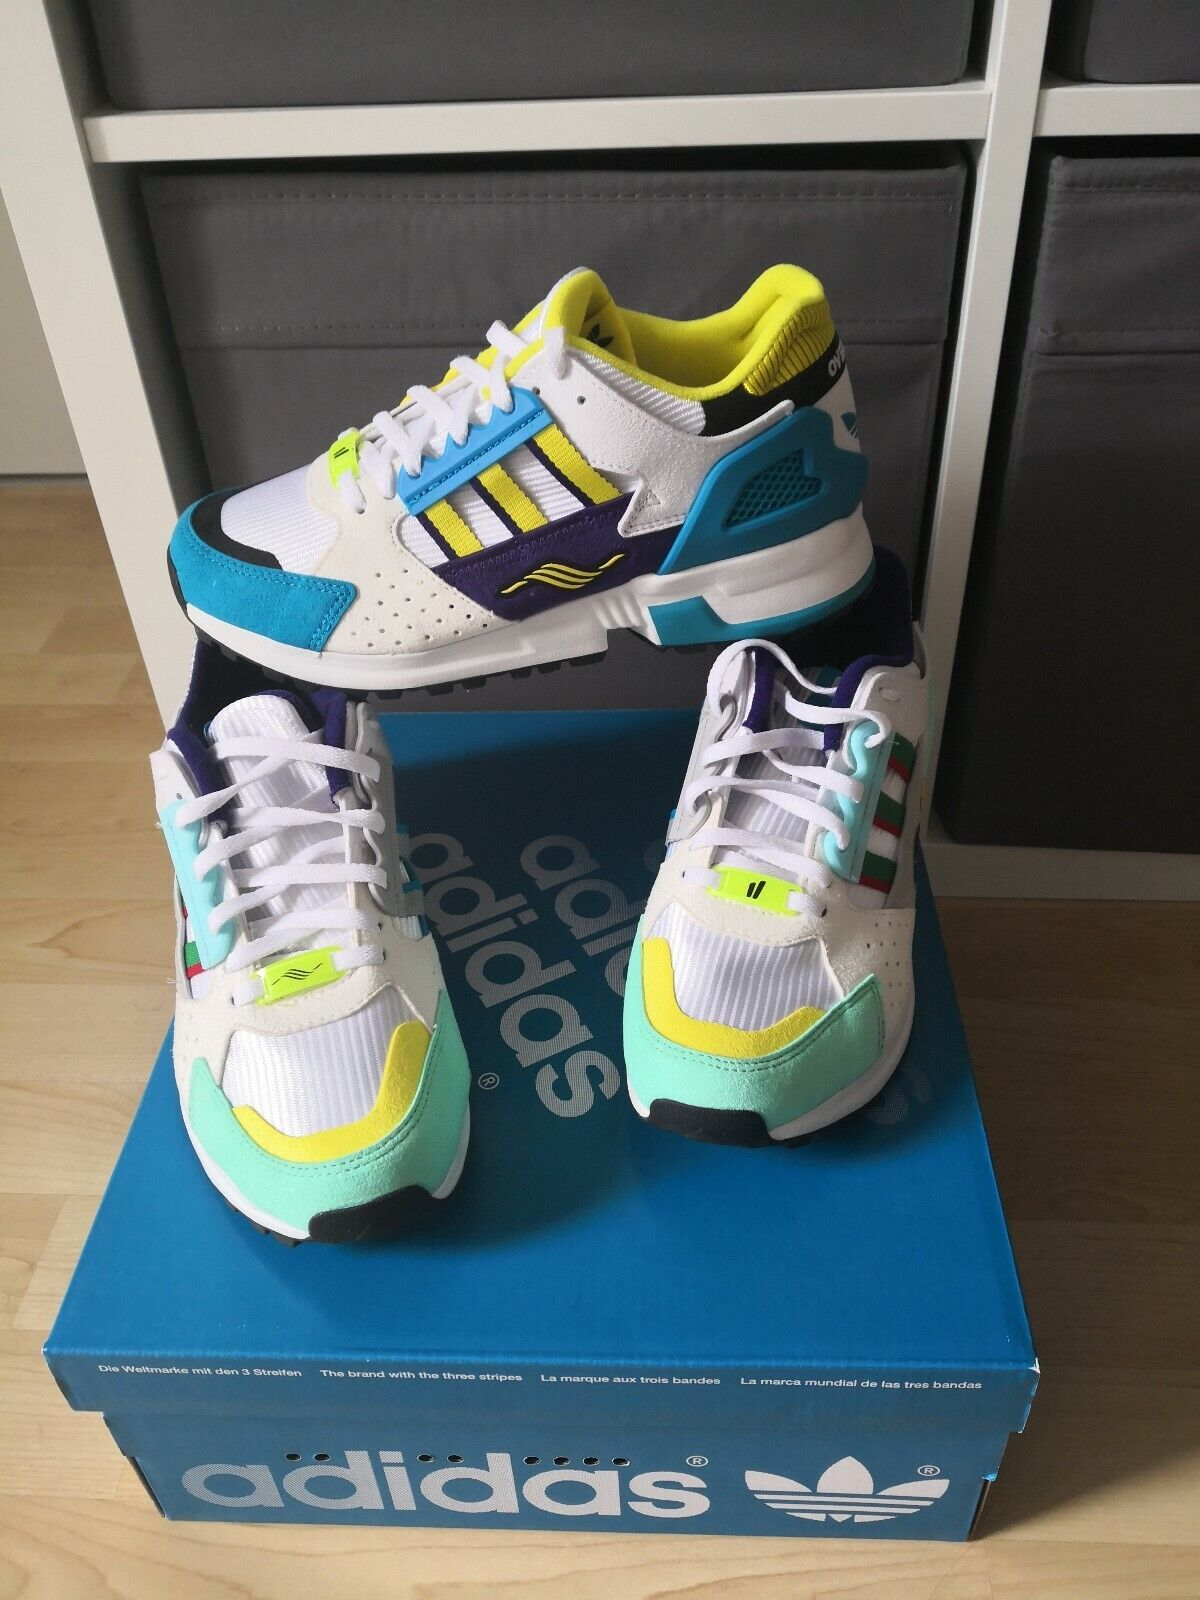 Adidas ZX 10000 C C C Overkill Torsion Hydra Womens US 5 EU